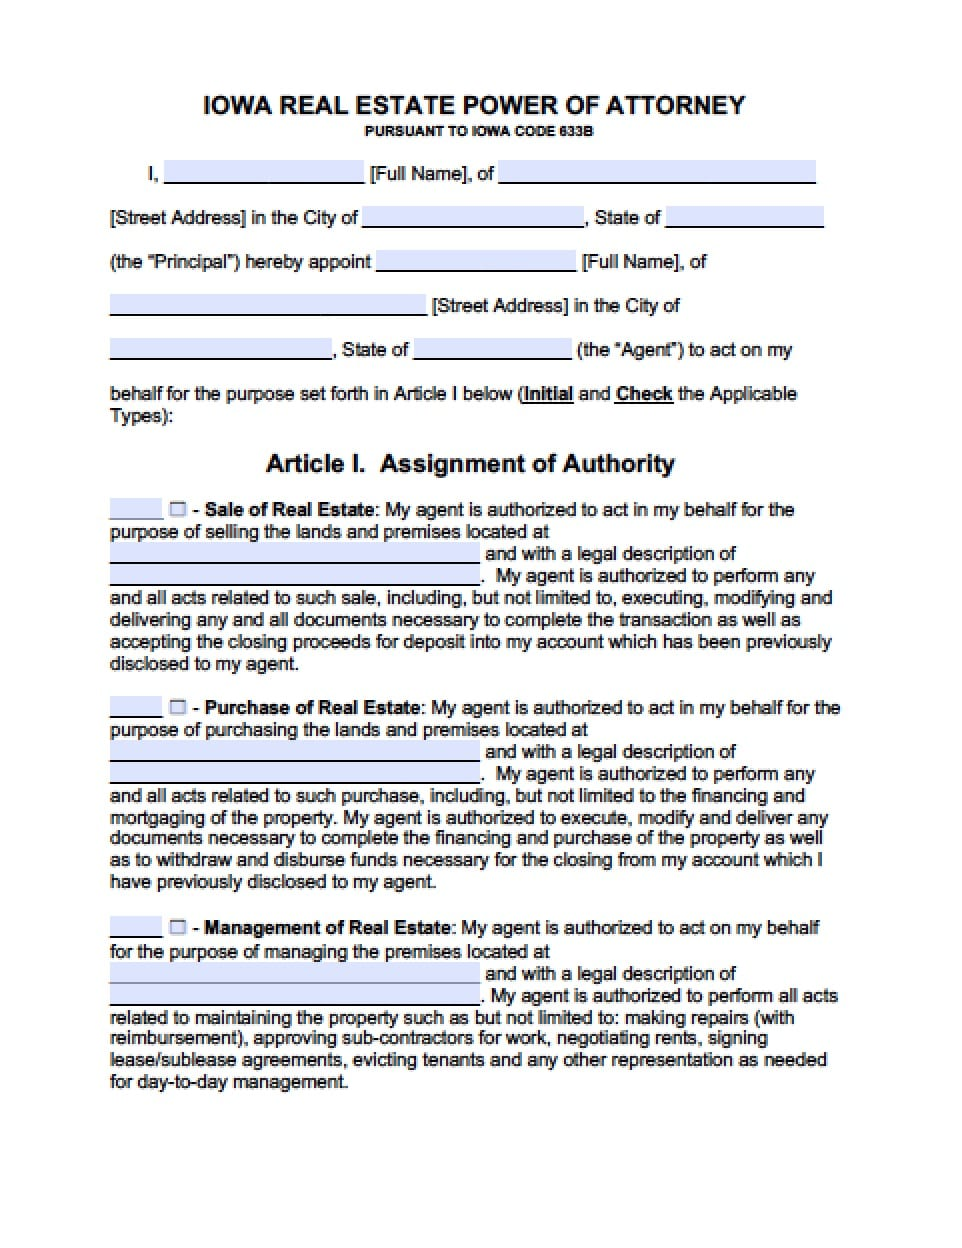 Iowa Real Estate ONLY Power of Attorney Form - Power of Attorney ...